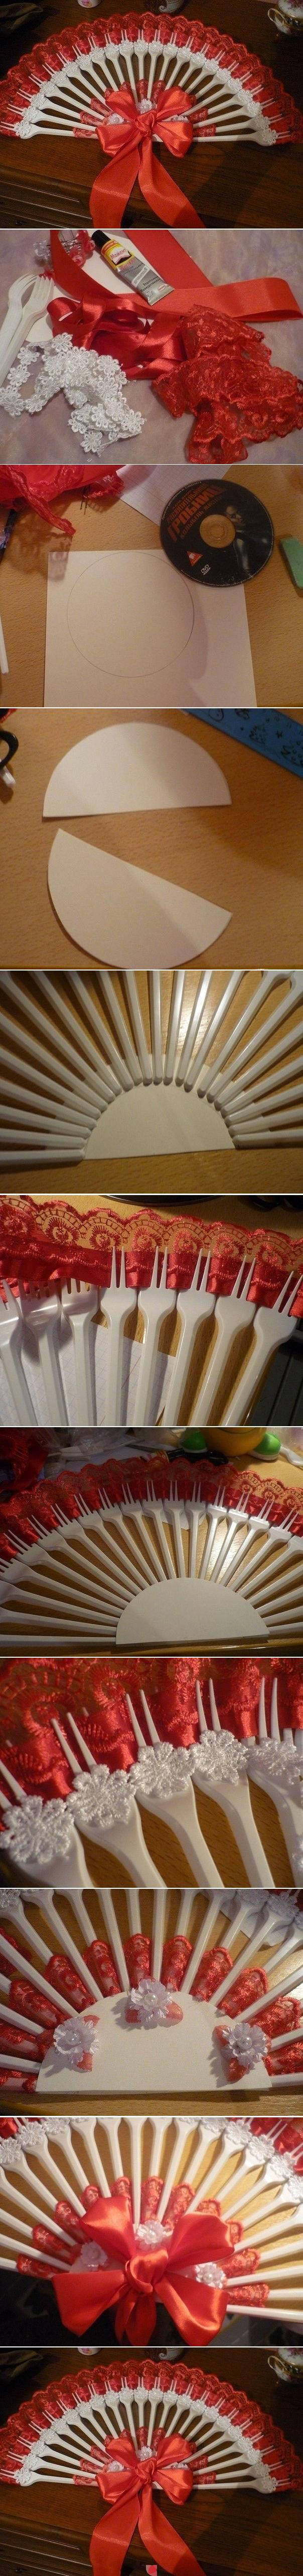 1000+ images about Plastic Spoons Crafts on Pinterest